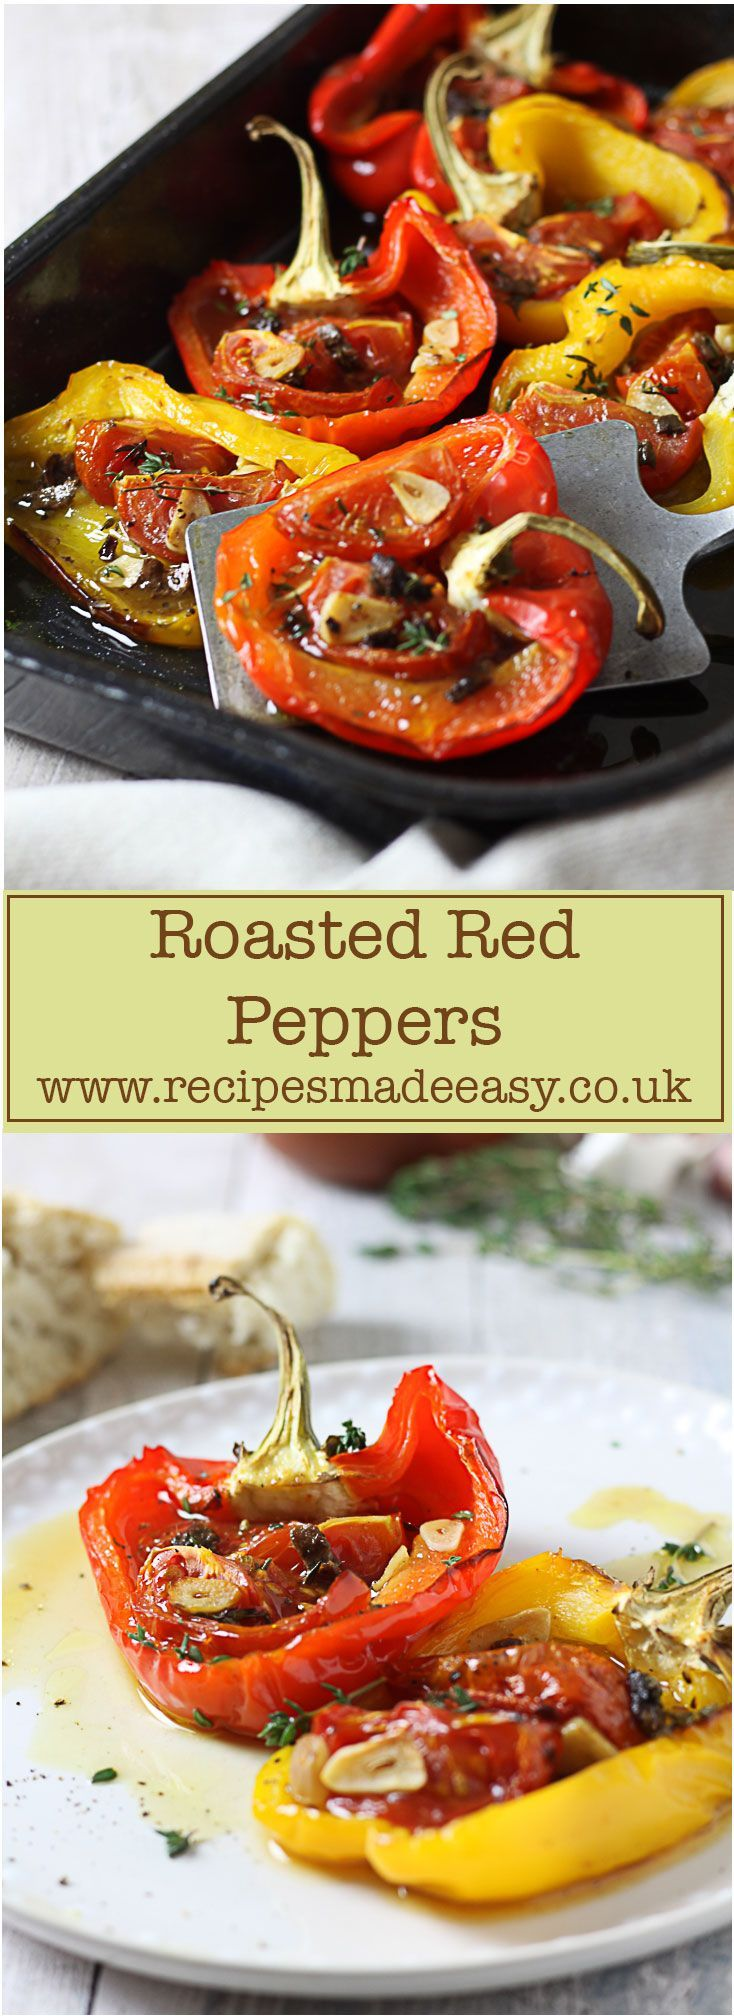 roasted peppers in roasting tin and plated